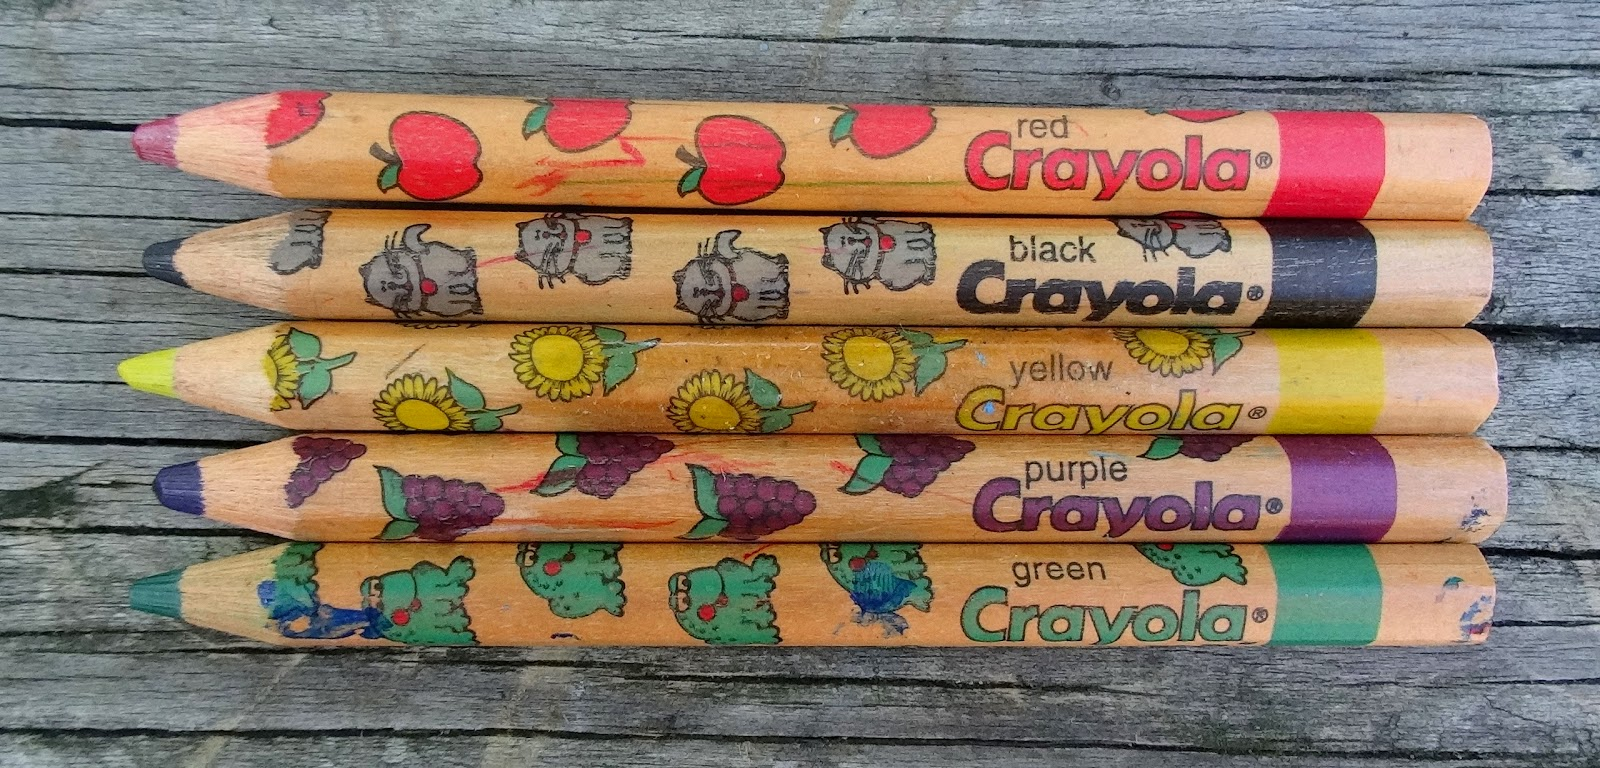 they are made by crayola and are called crayola write start colored pencils they are officially intended for younger kids but my older kids fought to - Crayola Write Start Colored Pencils